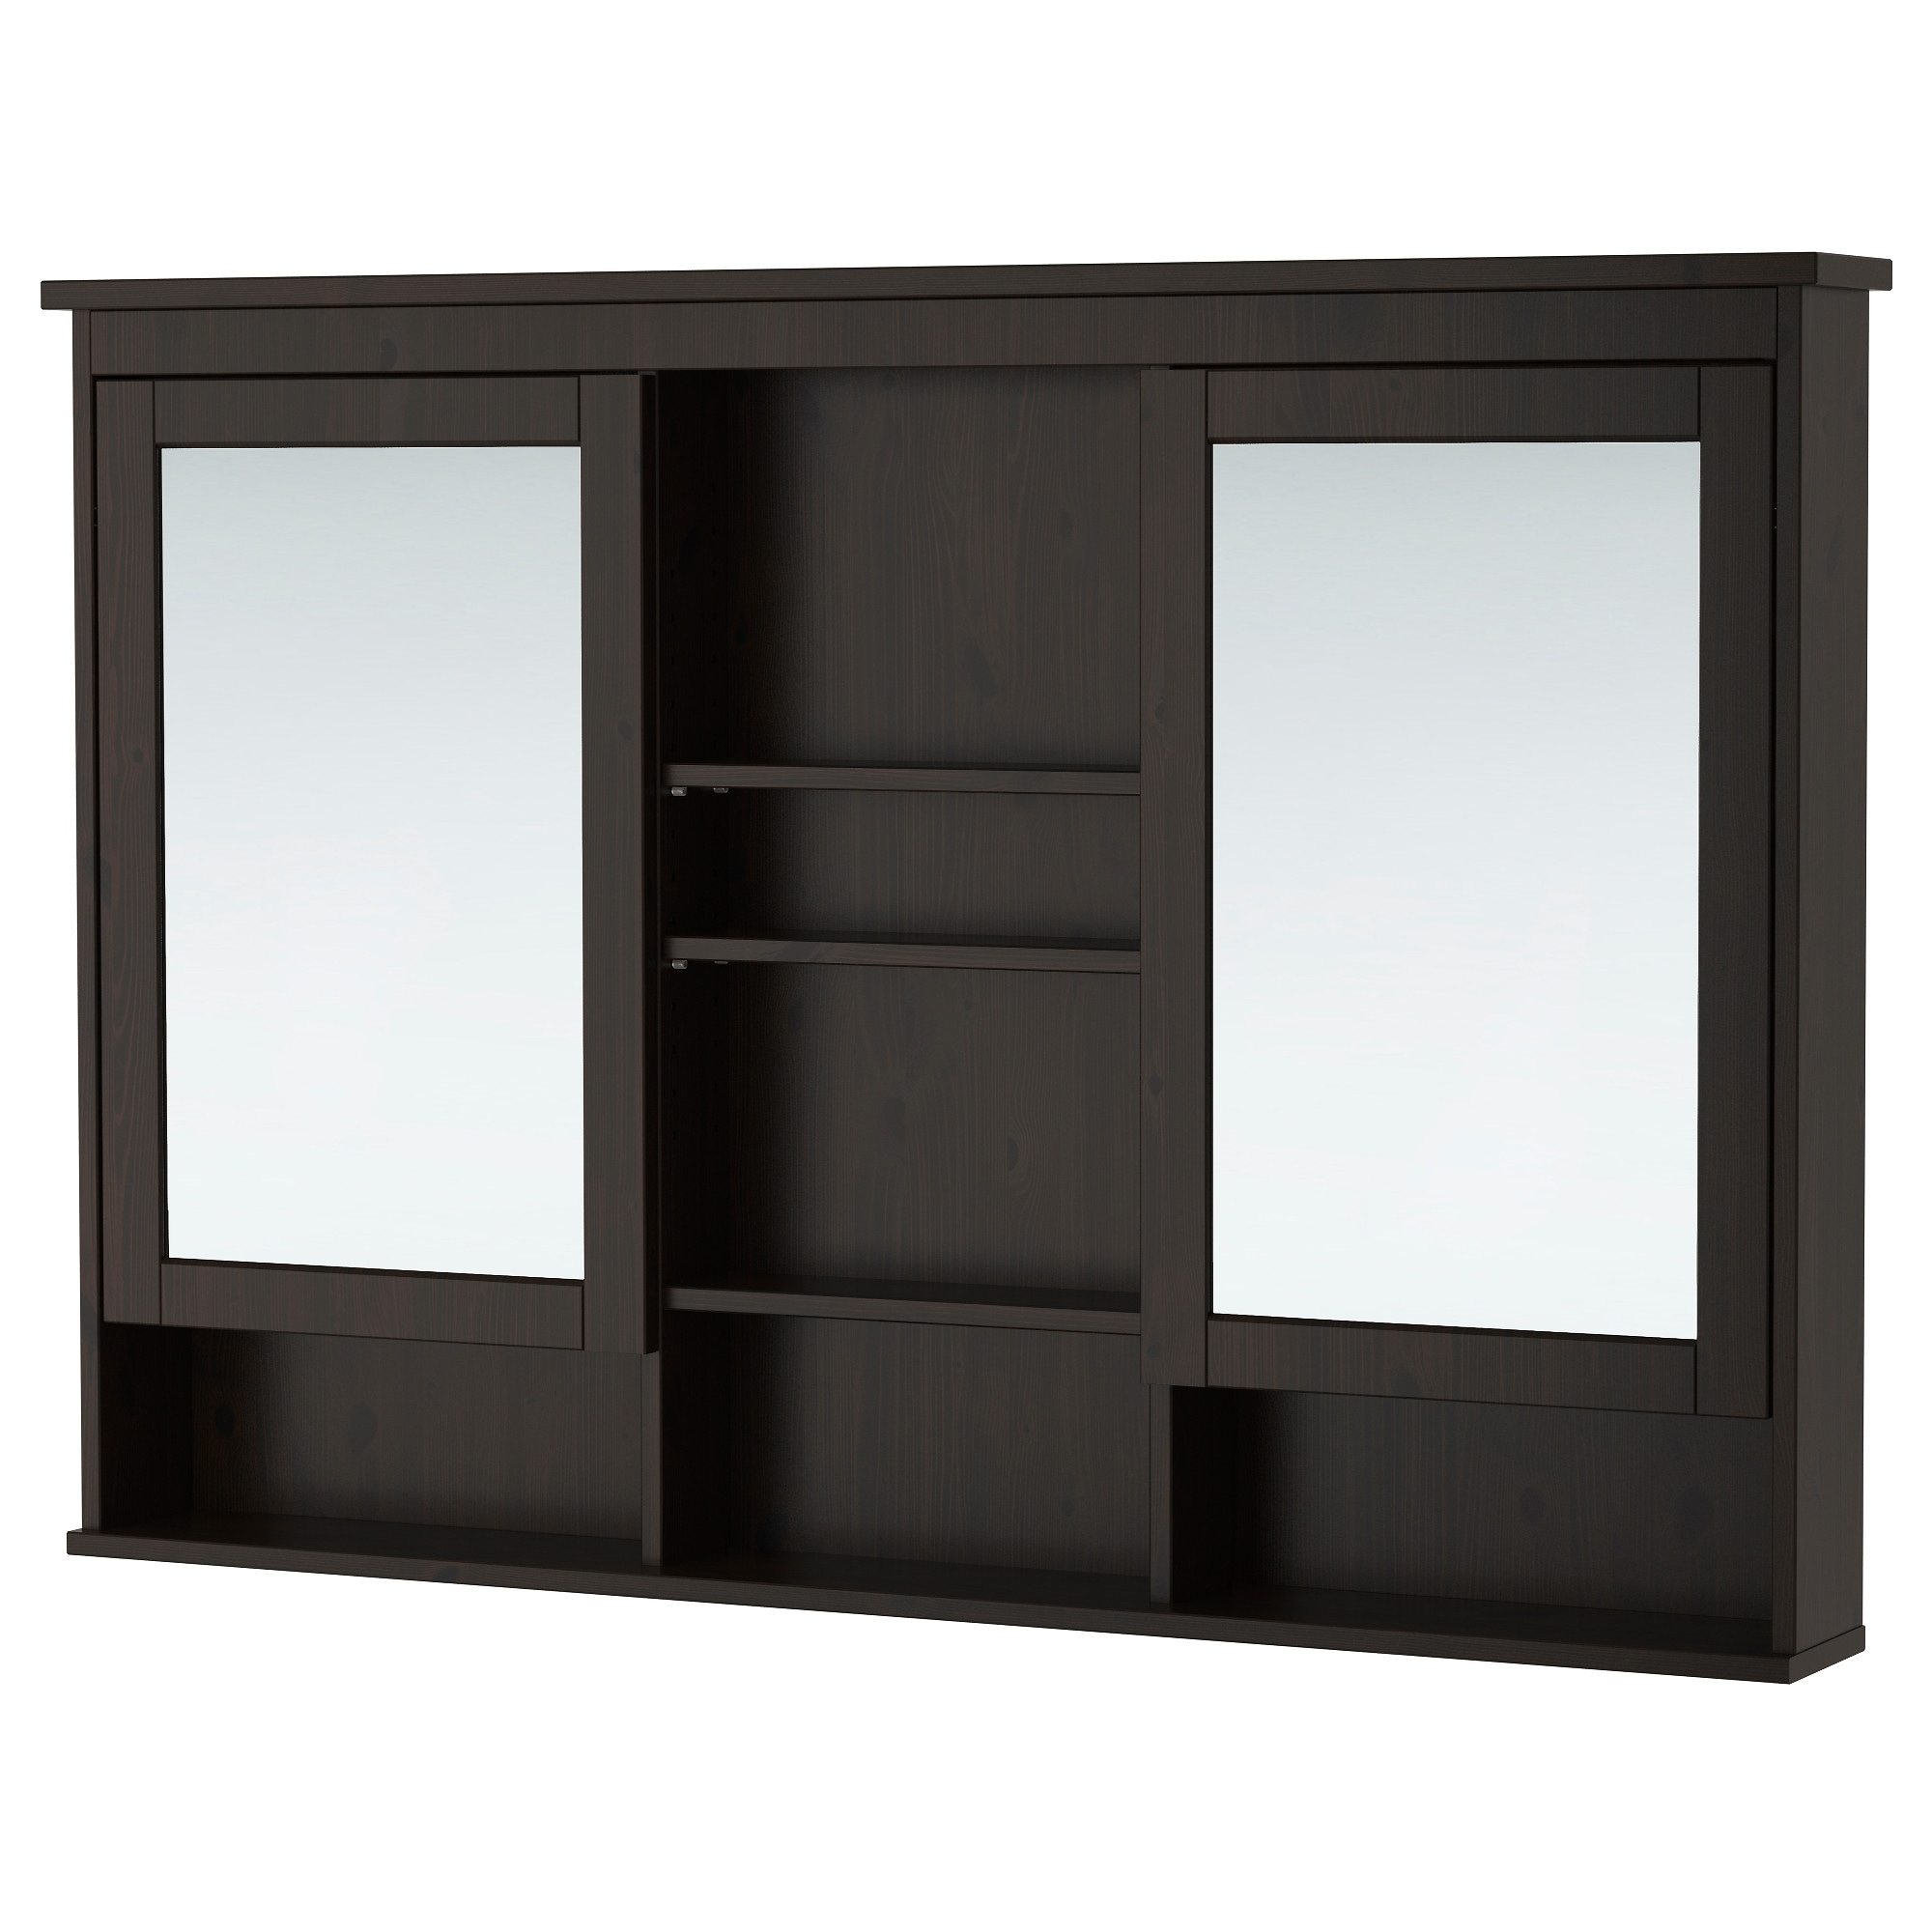 miroirs ikea stockholm ikea and mirror on pinterest home floor mirrors on pinterest floor. Black Bedroom Furniture Sets. Home Design Ideas